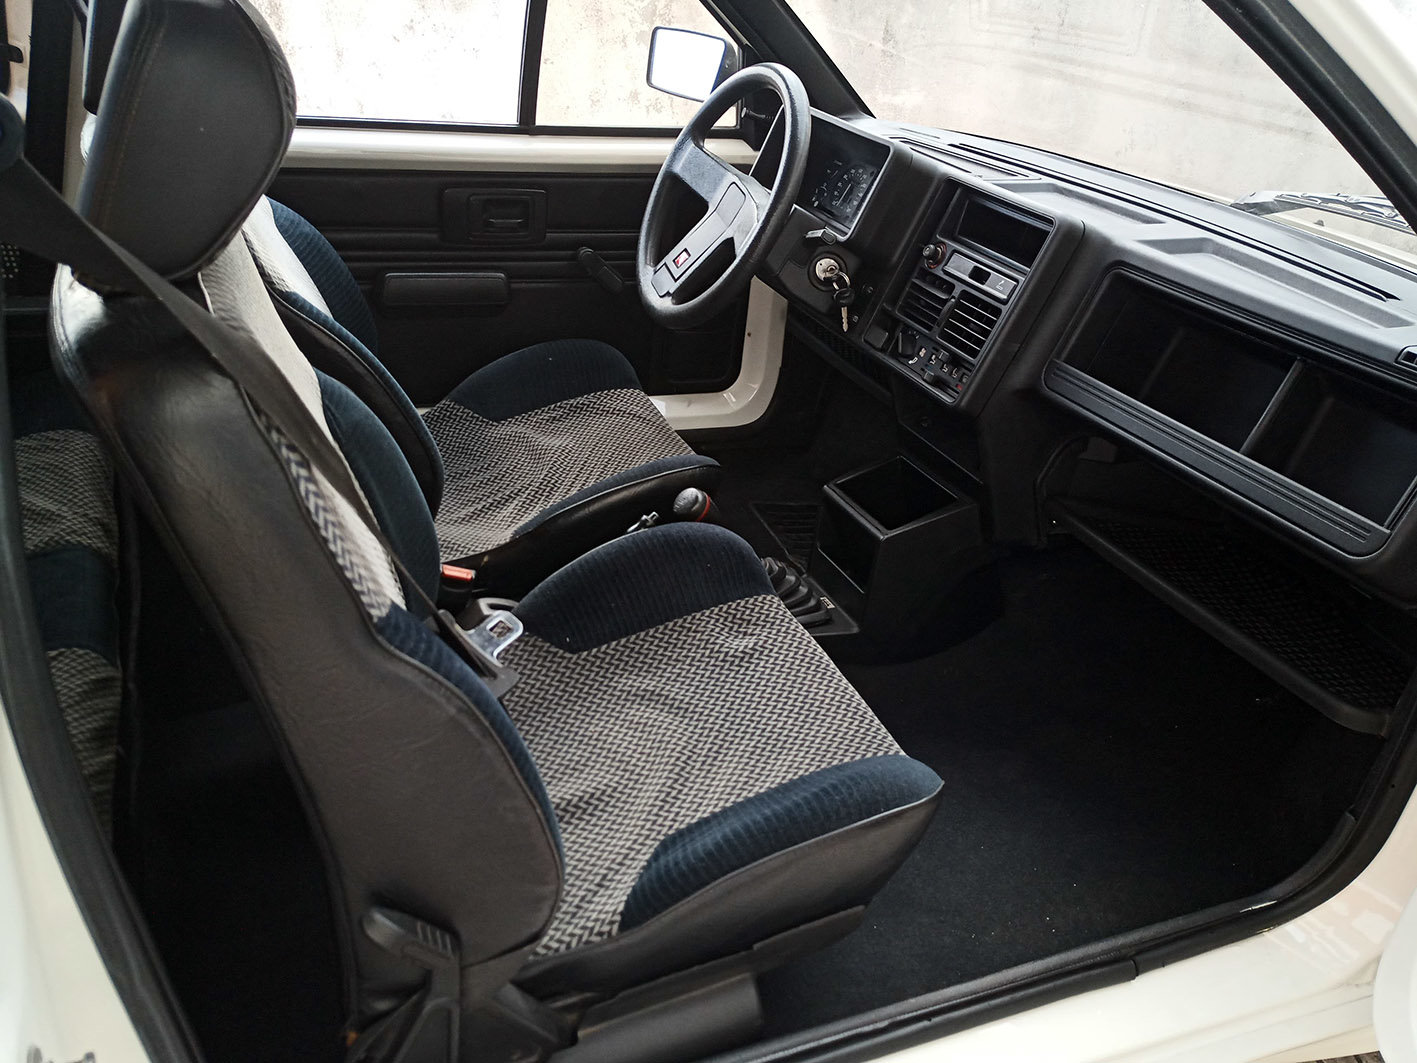 1988 Citroen AX Sport For Sale (picture 4 of 6)